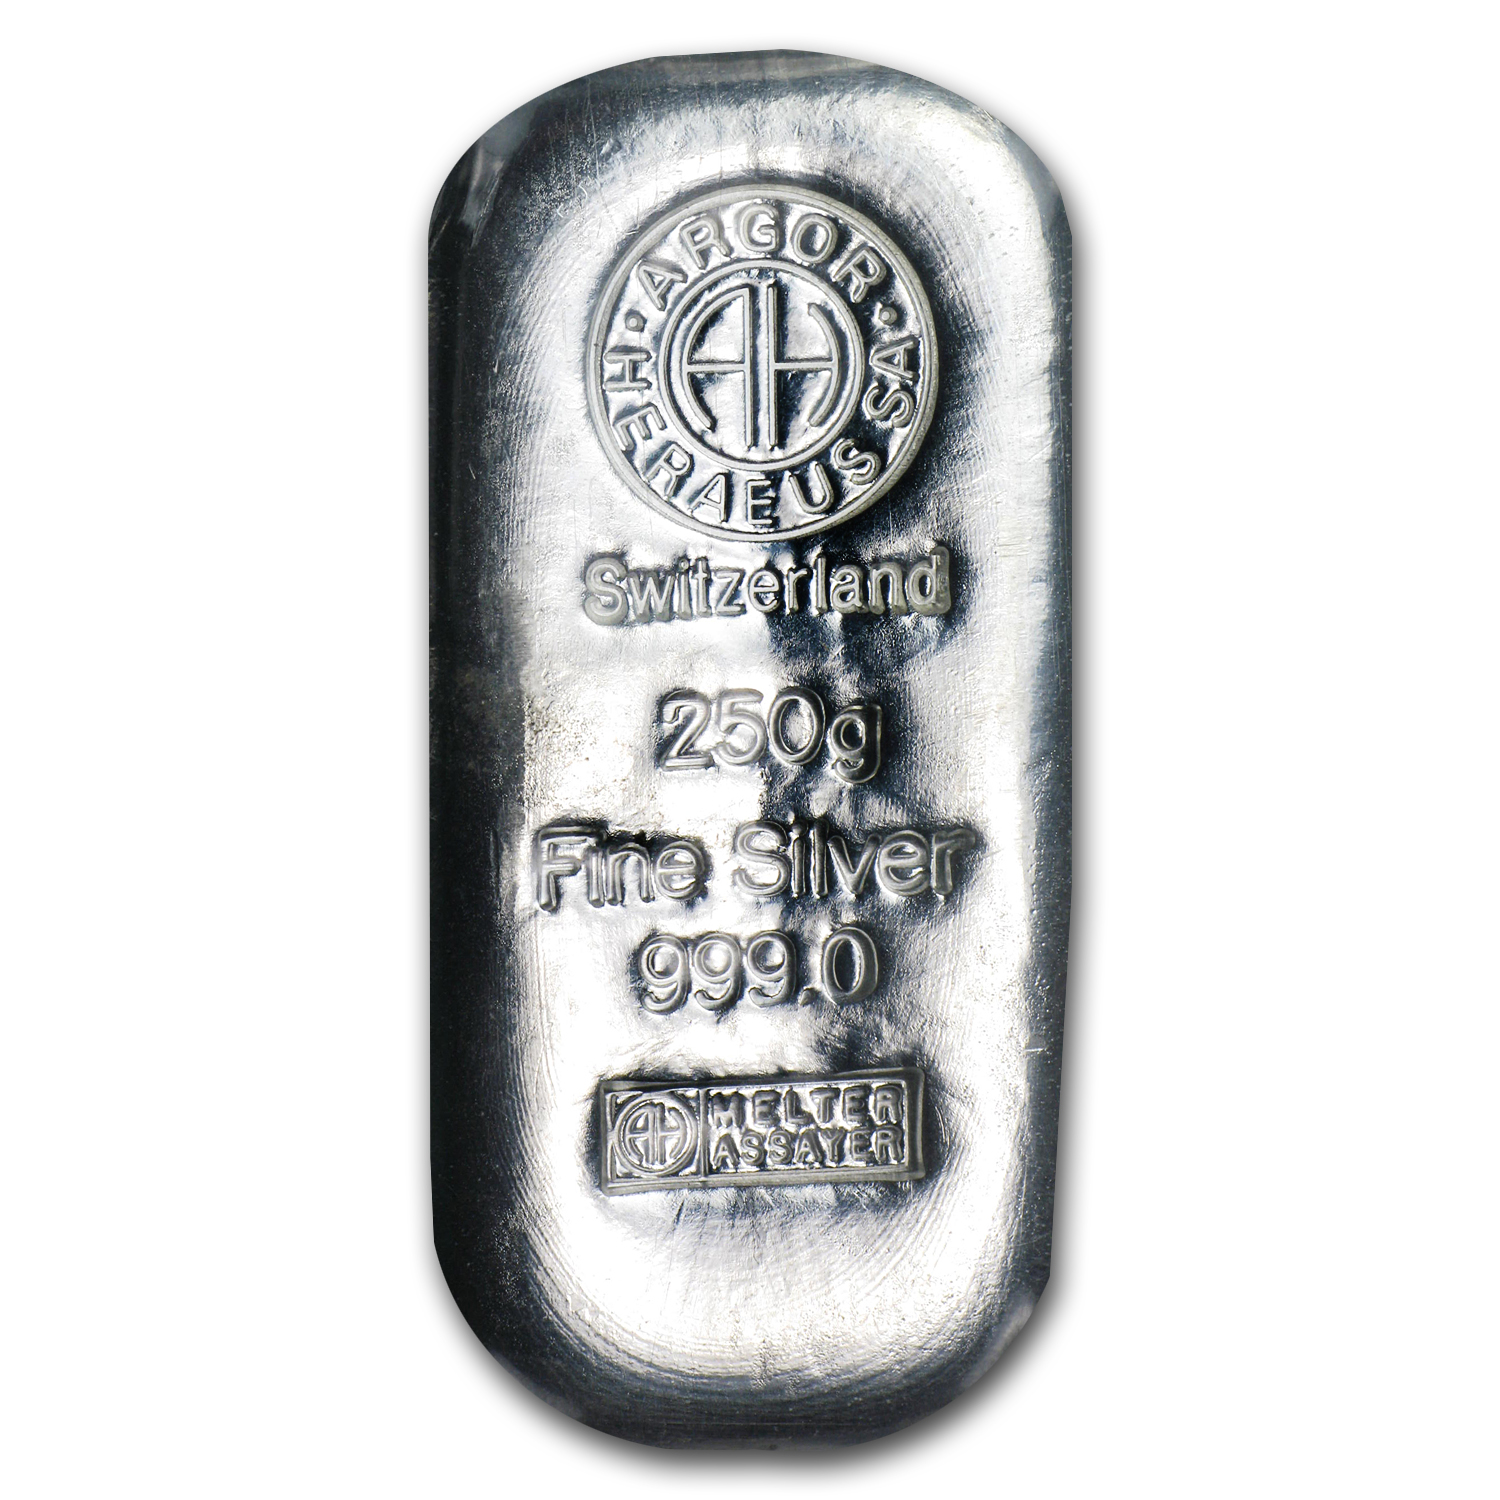 250 gram Silver Bars - Argor/Heraeus (Switzerland)